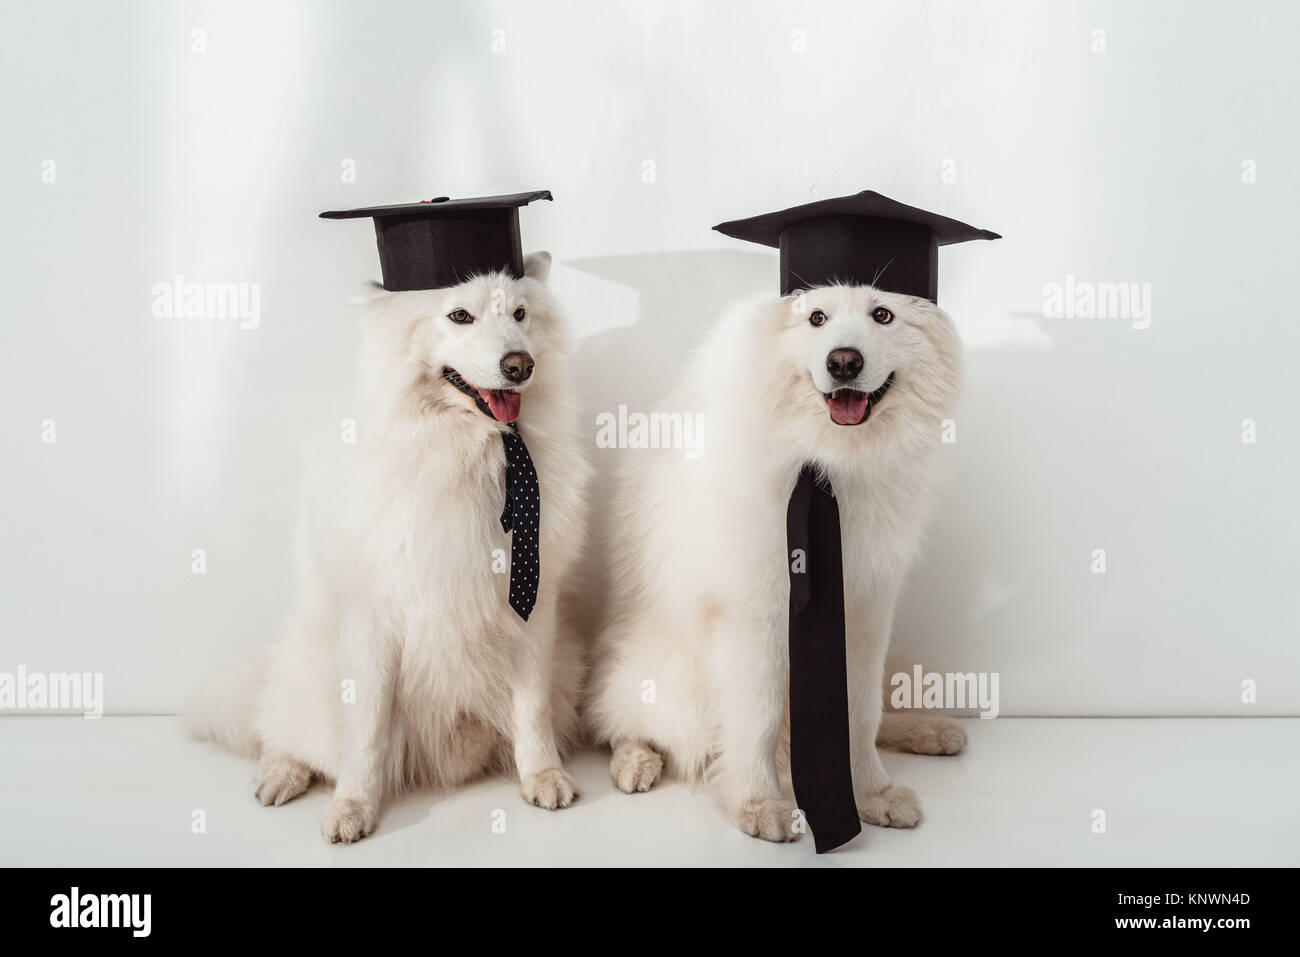 dogs in graduation hats - Stock Image